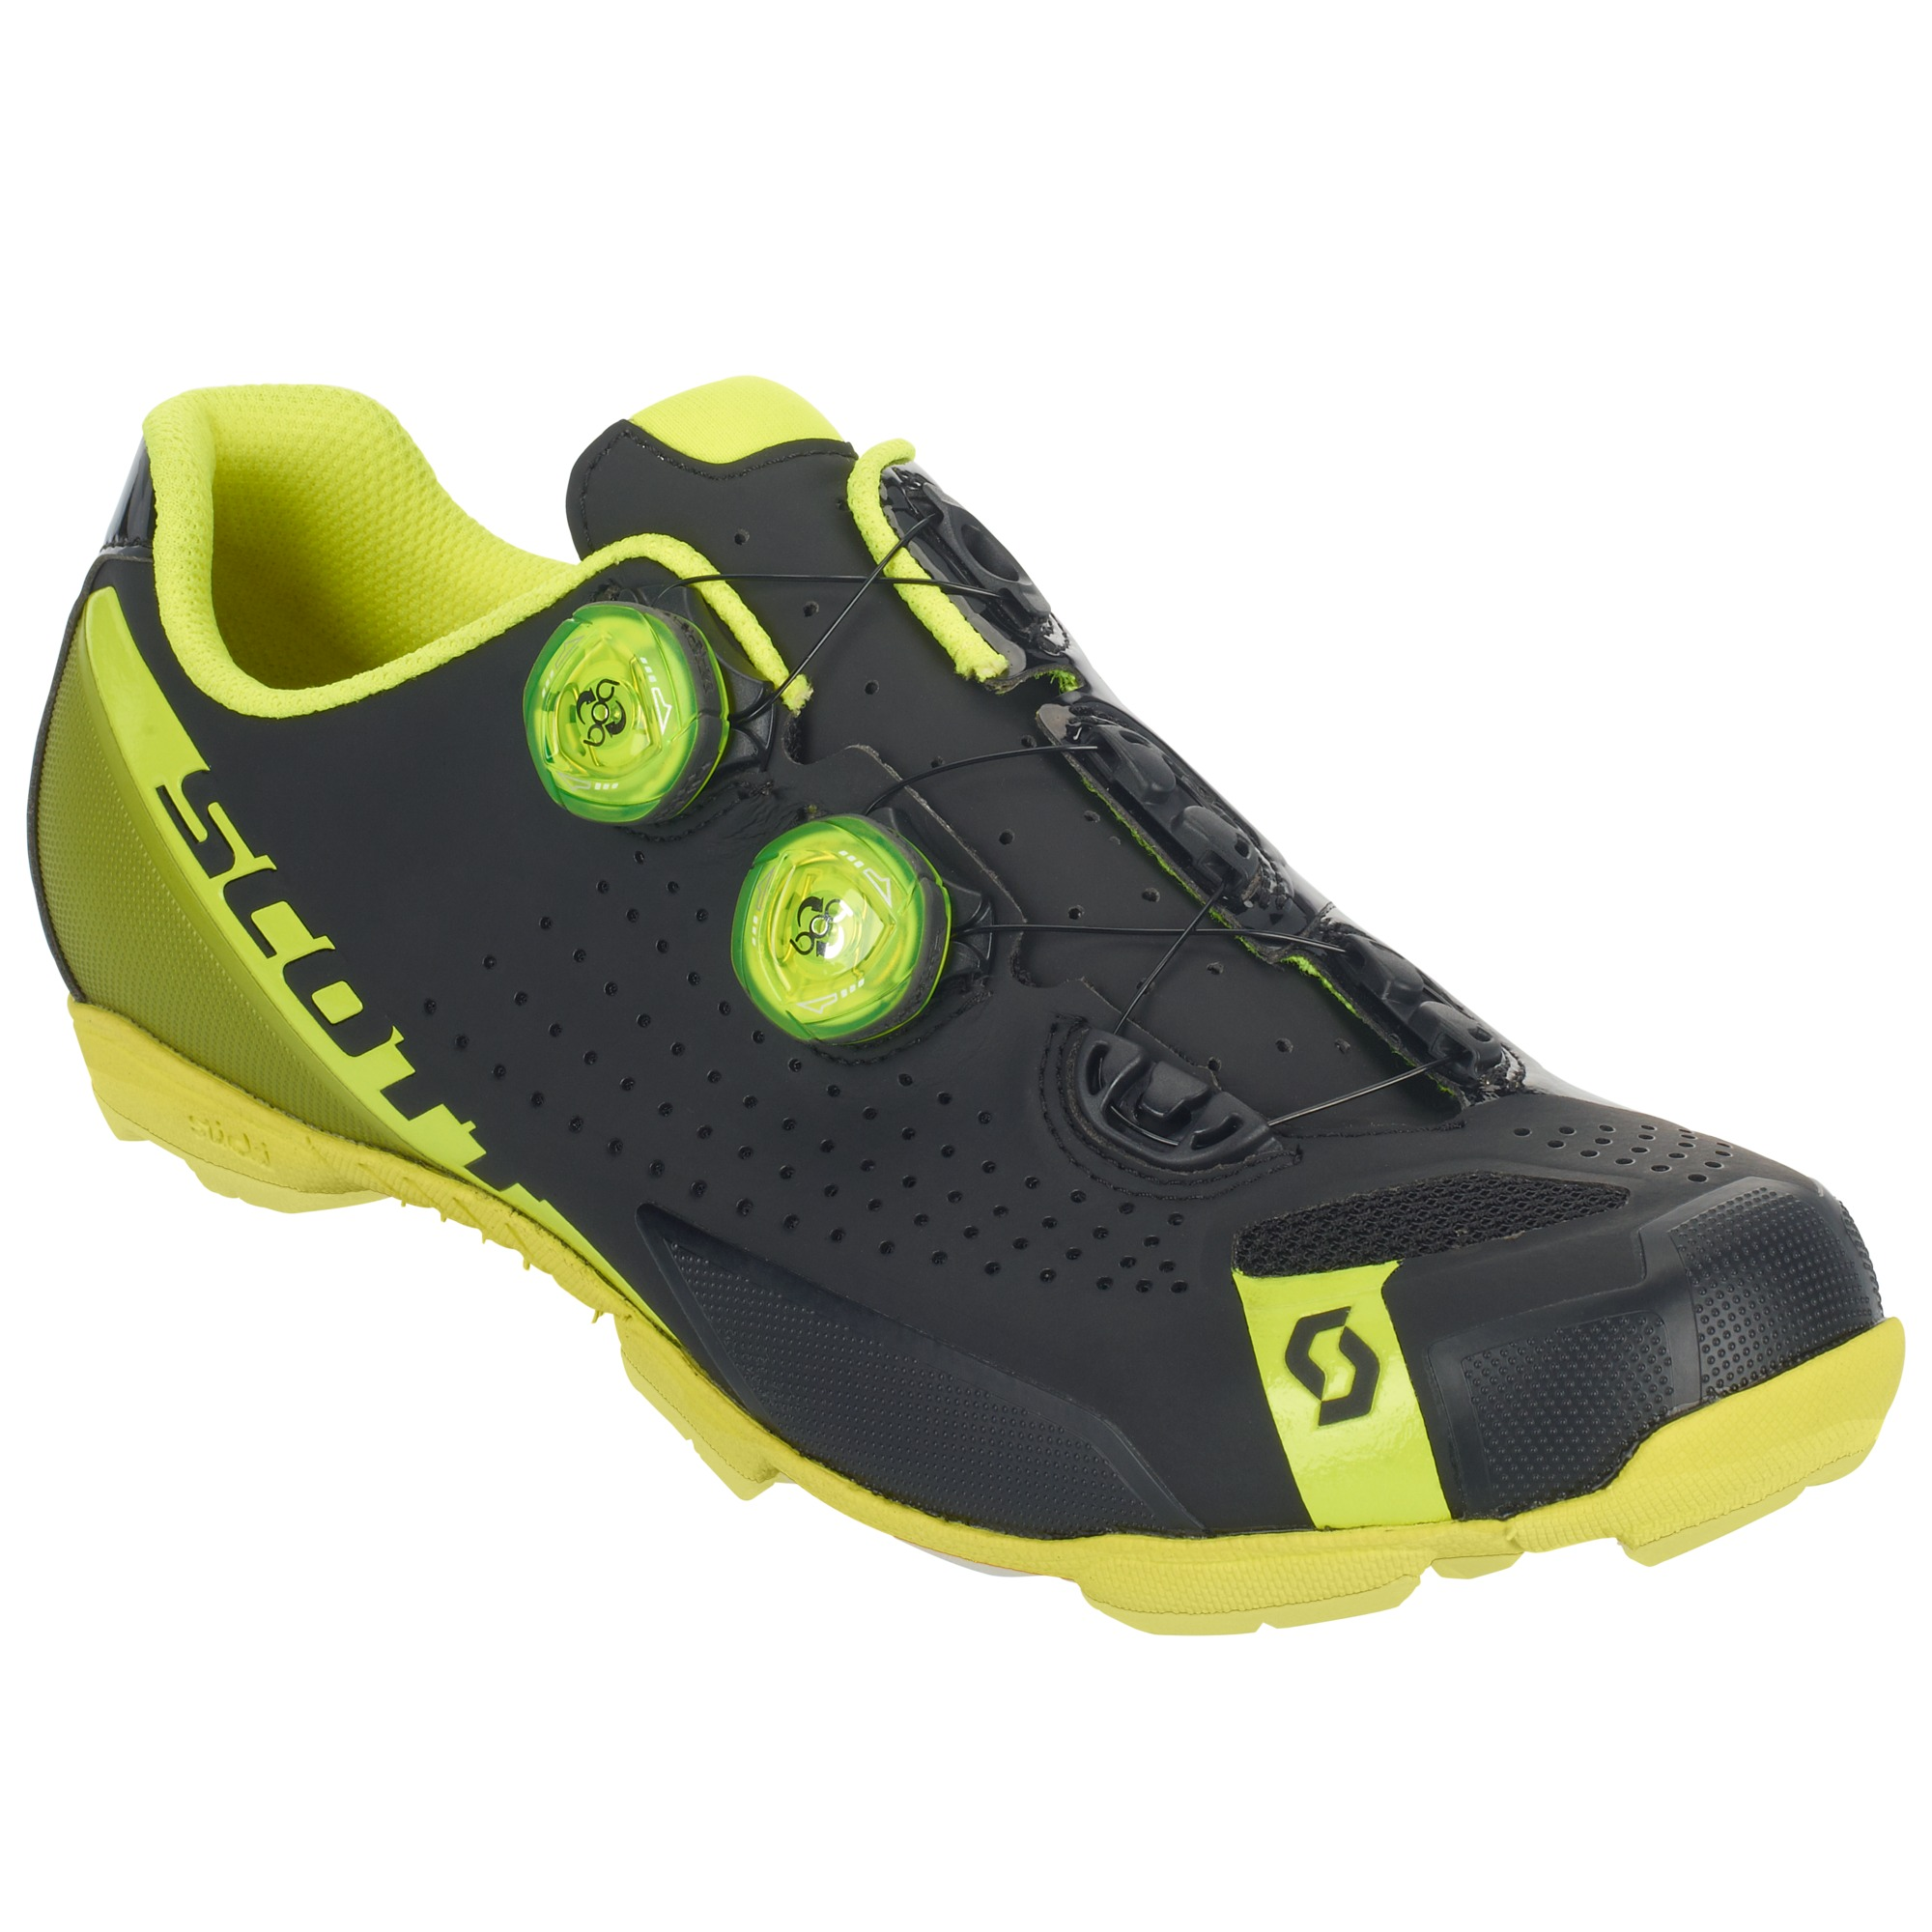 SCOTT Mtb Rc Shoe